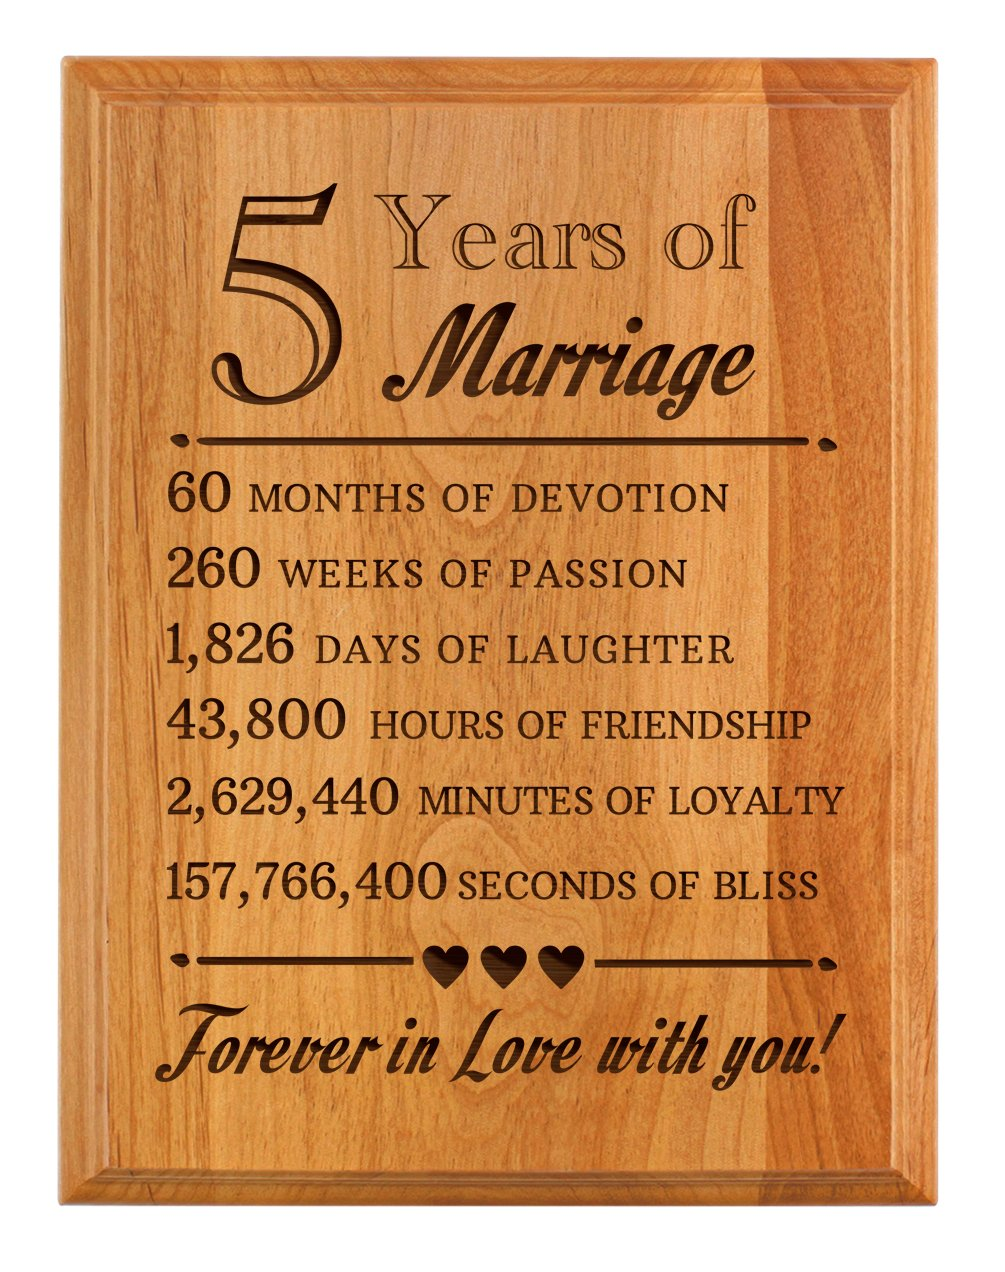 5th Wedding Anniversary Gift.Thiswear 5th Wedding Forever In Love You Wood 7x9 Oak Wood Engraved Plaque Wood